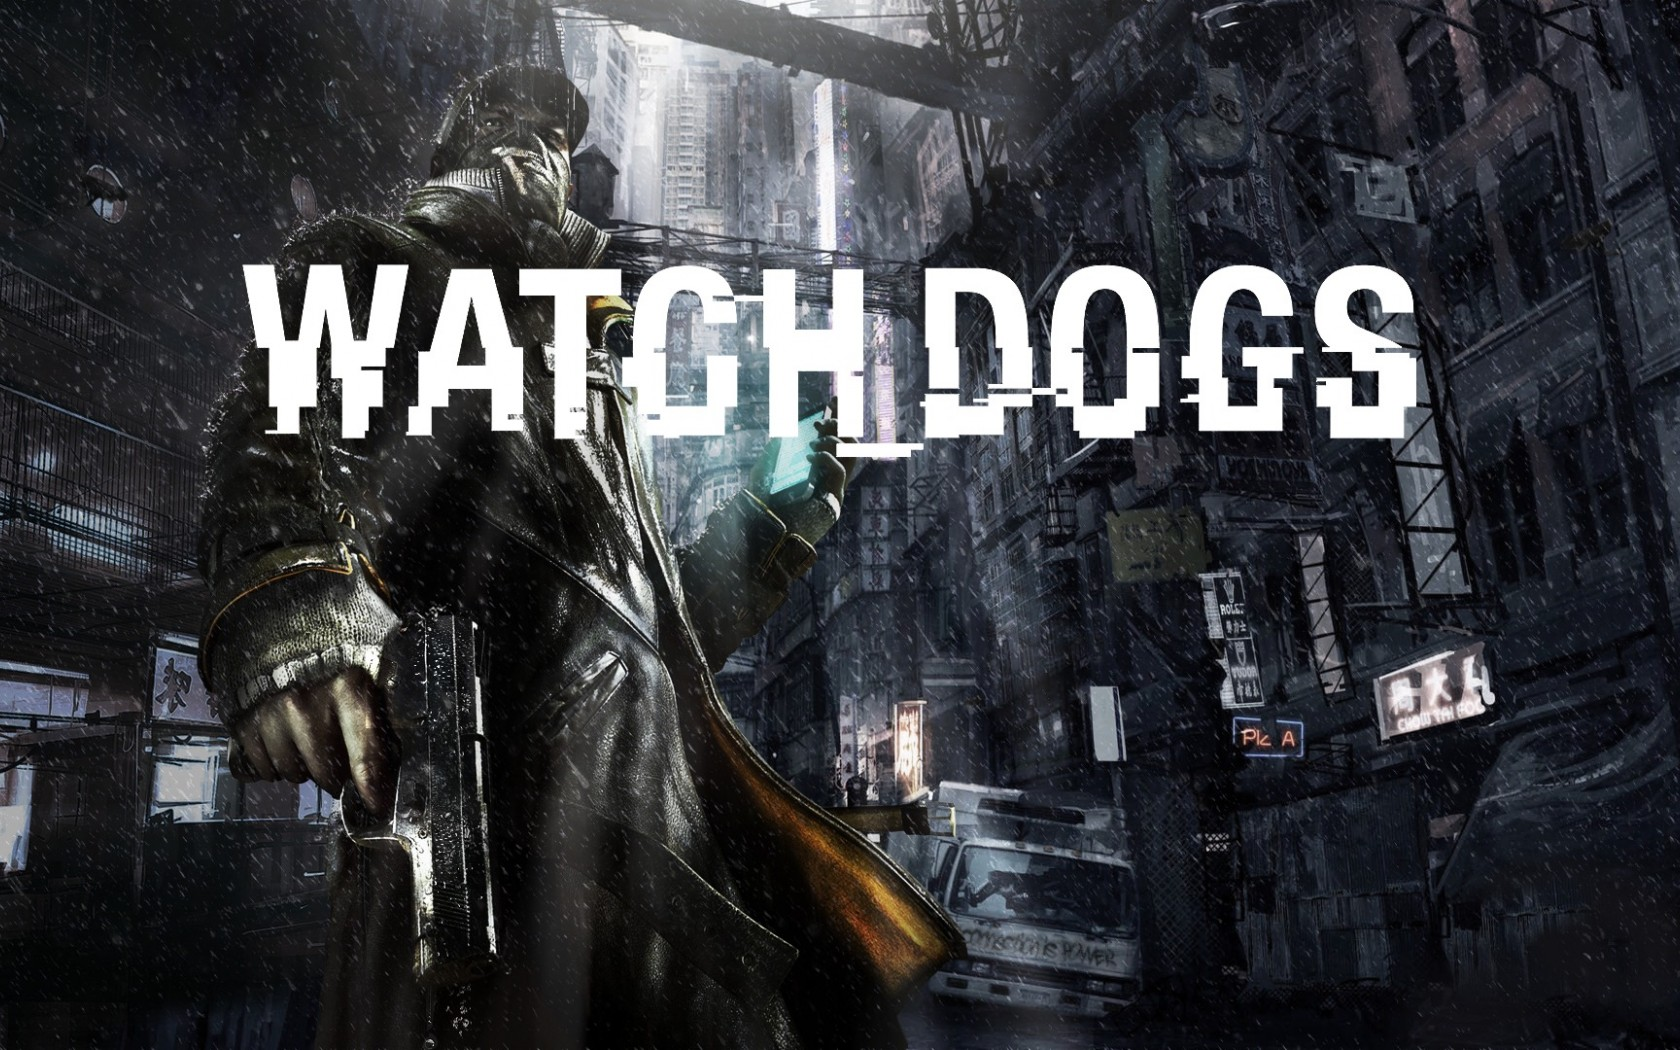 Watch Dogs 2 details leak out early, before big E3 reveal